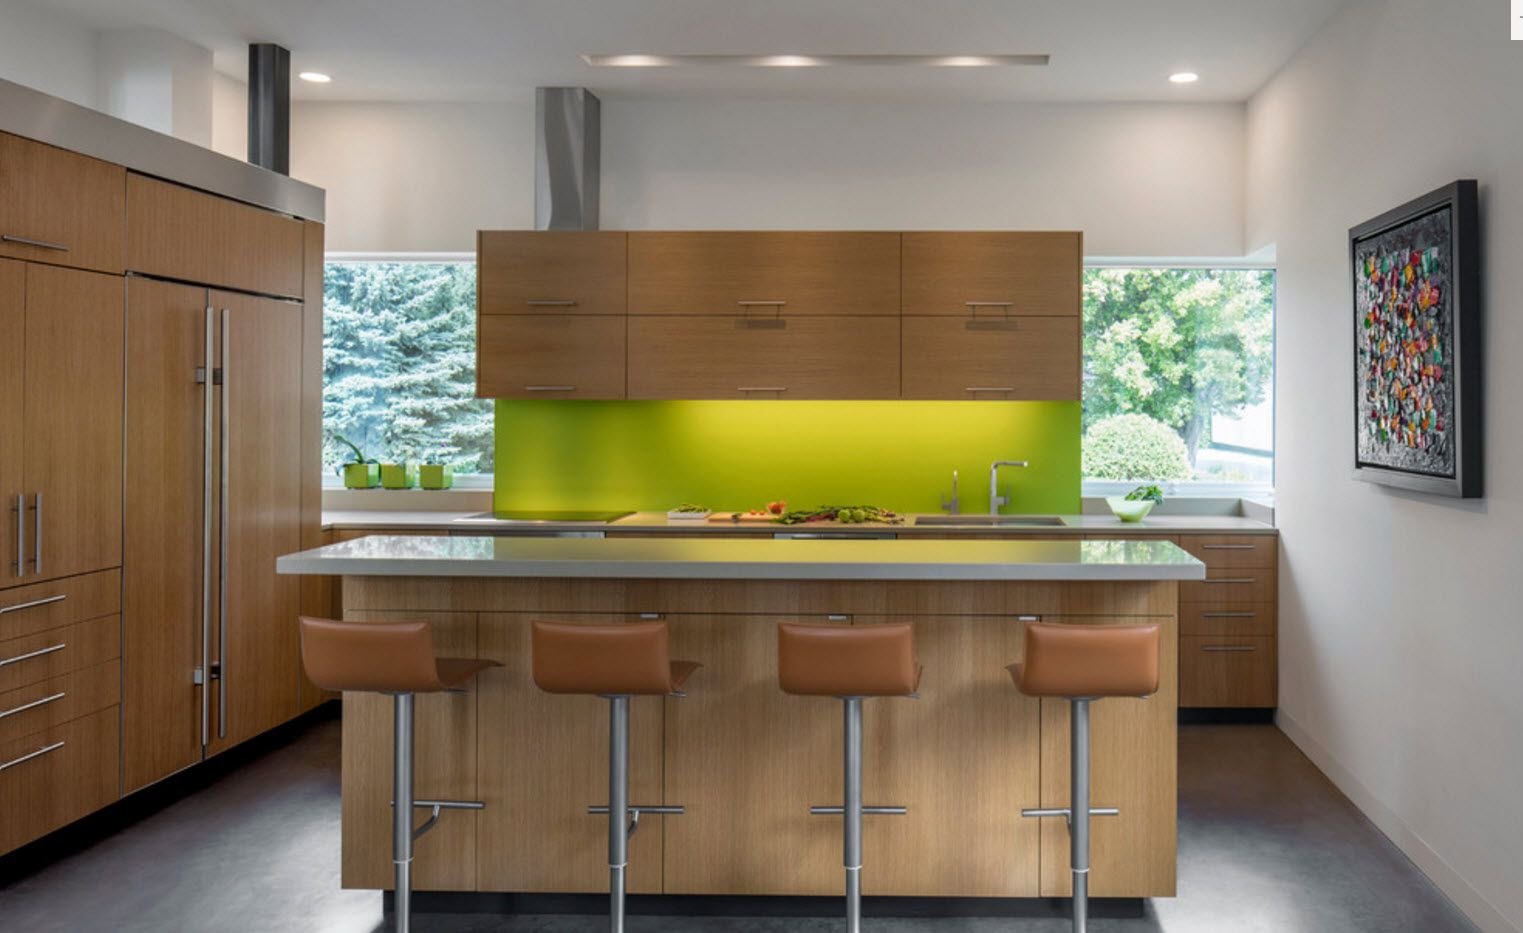 Merveilleux 100+ Photo Design Ideas Of Modern, Comfortable IKEA Kitchens. Green  Highlighted Splashback